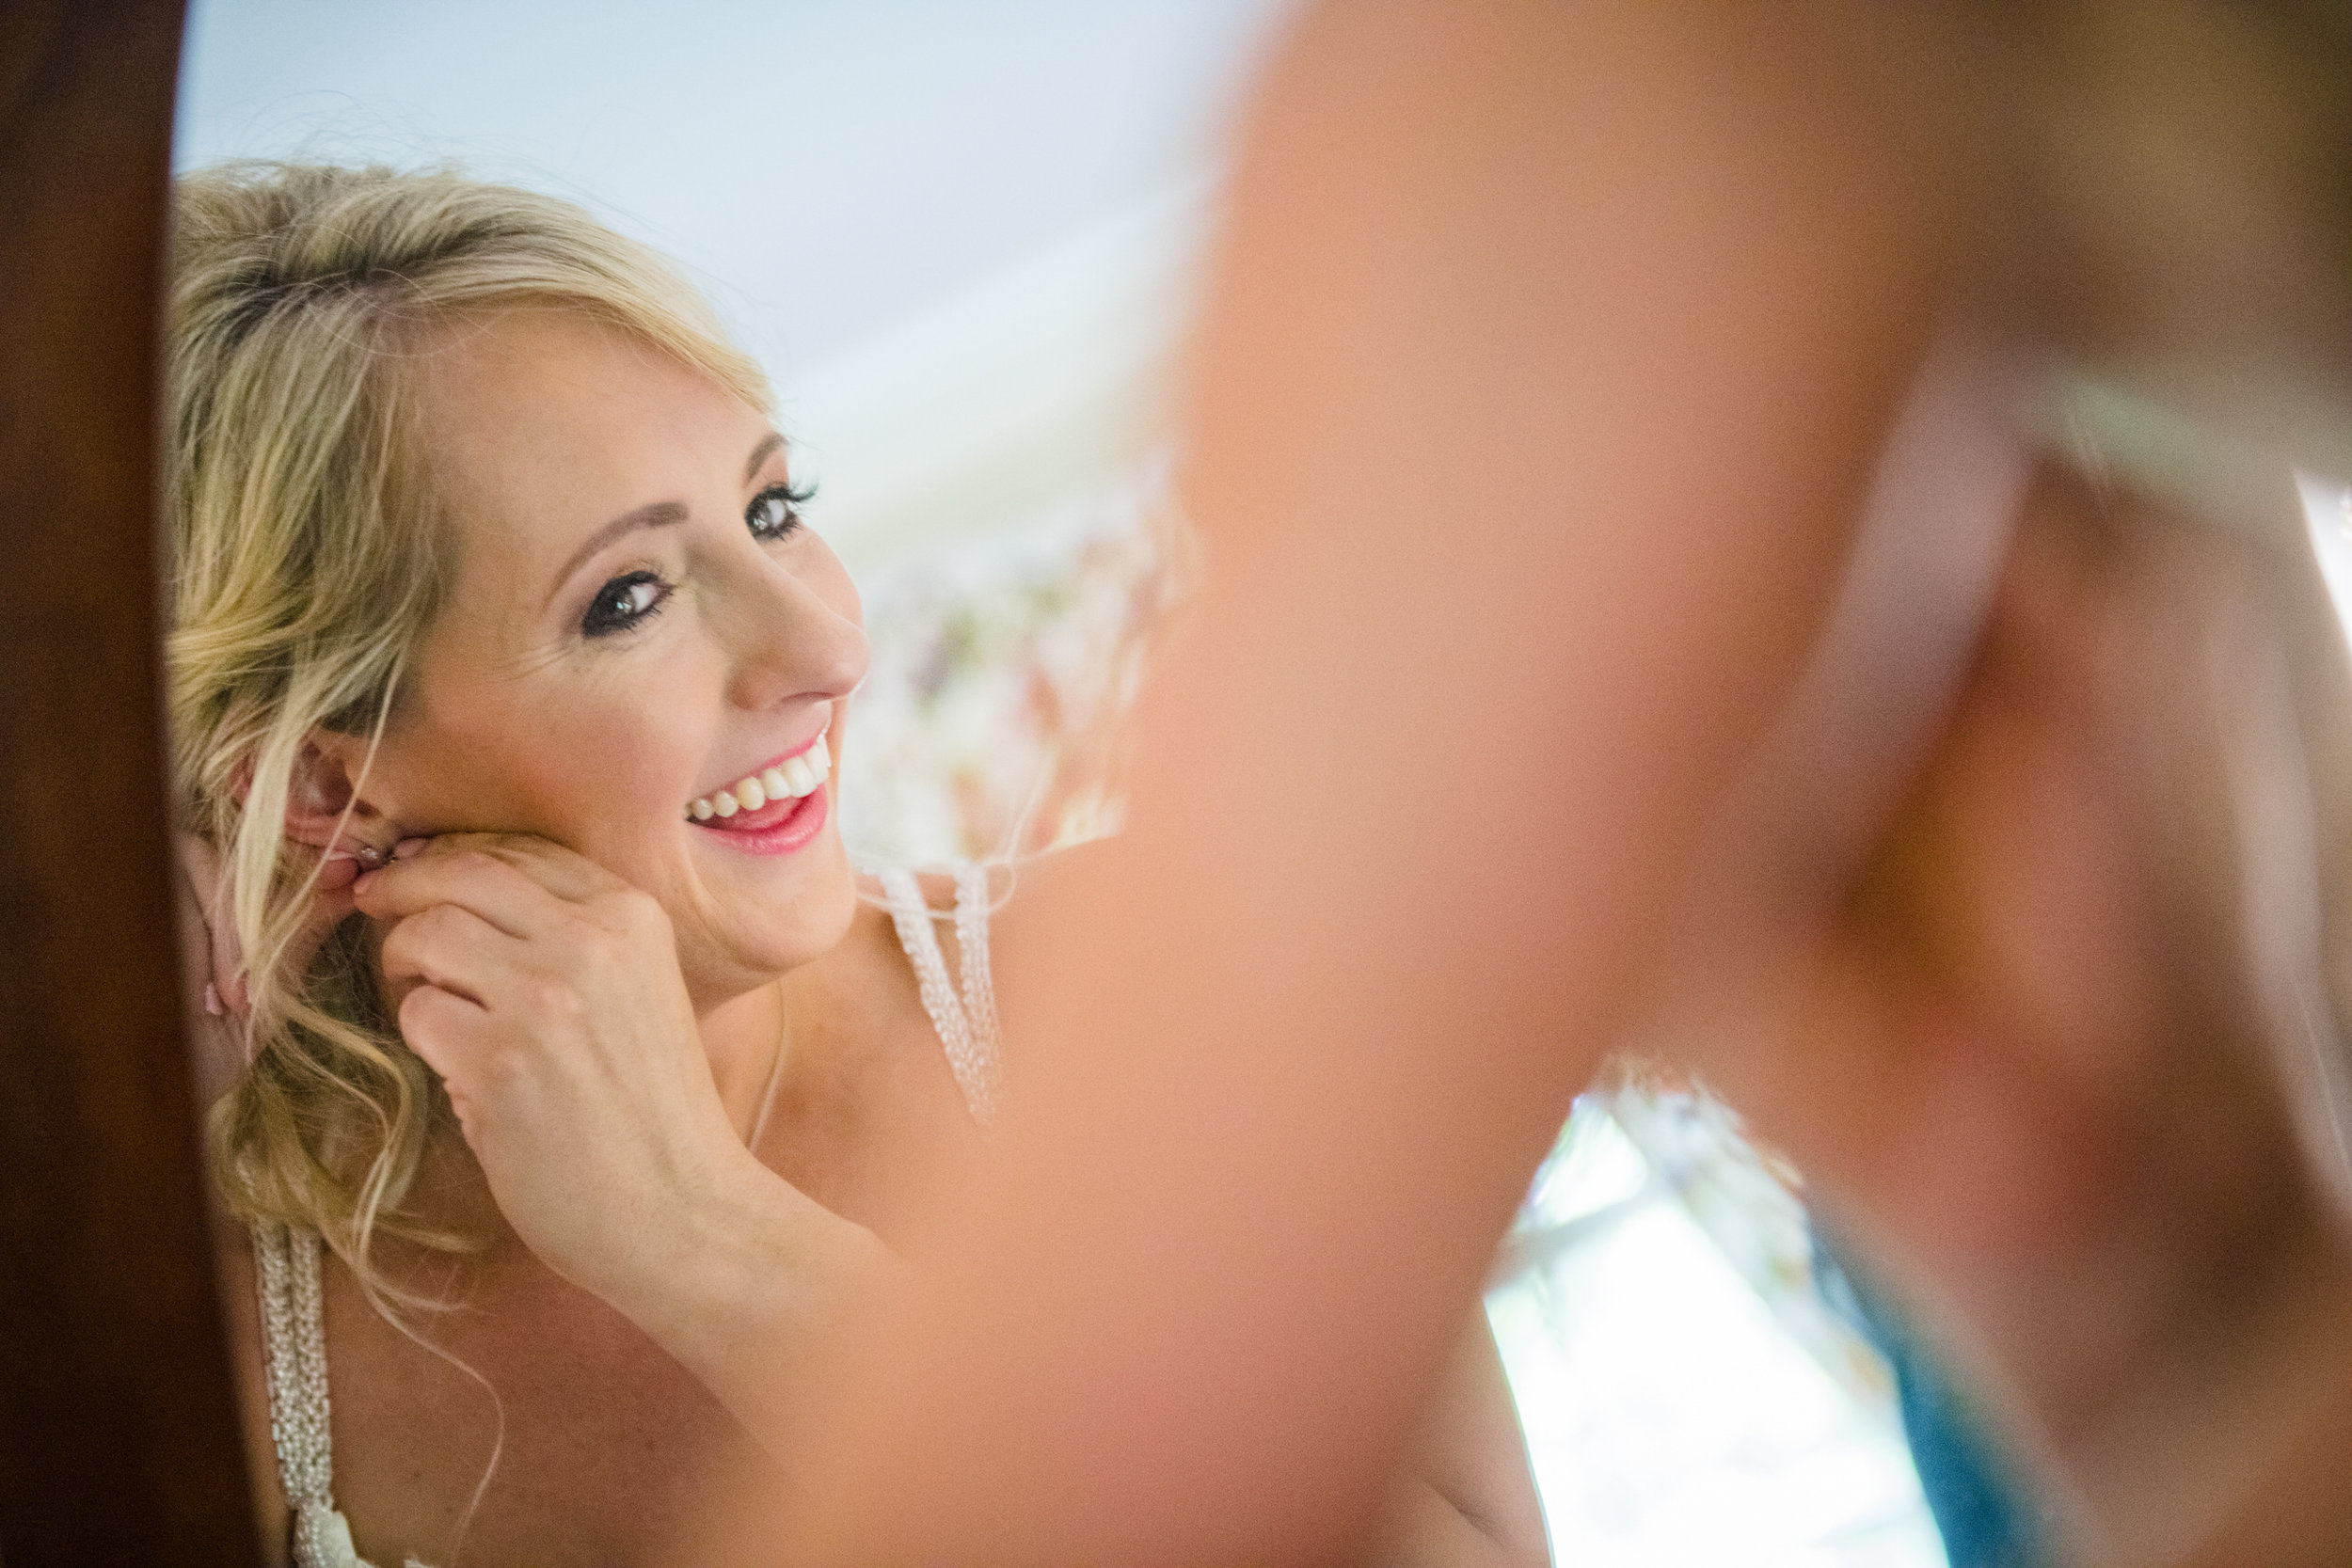 KentManorInnWedding-Marissa&Raed-GettingReady-1291.jpg